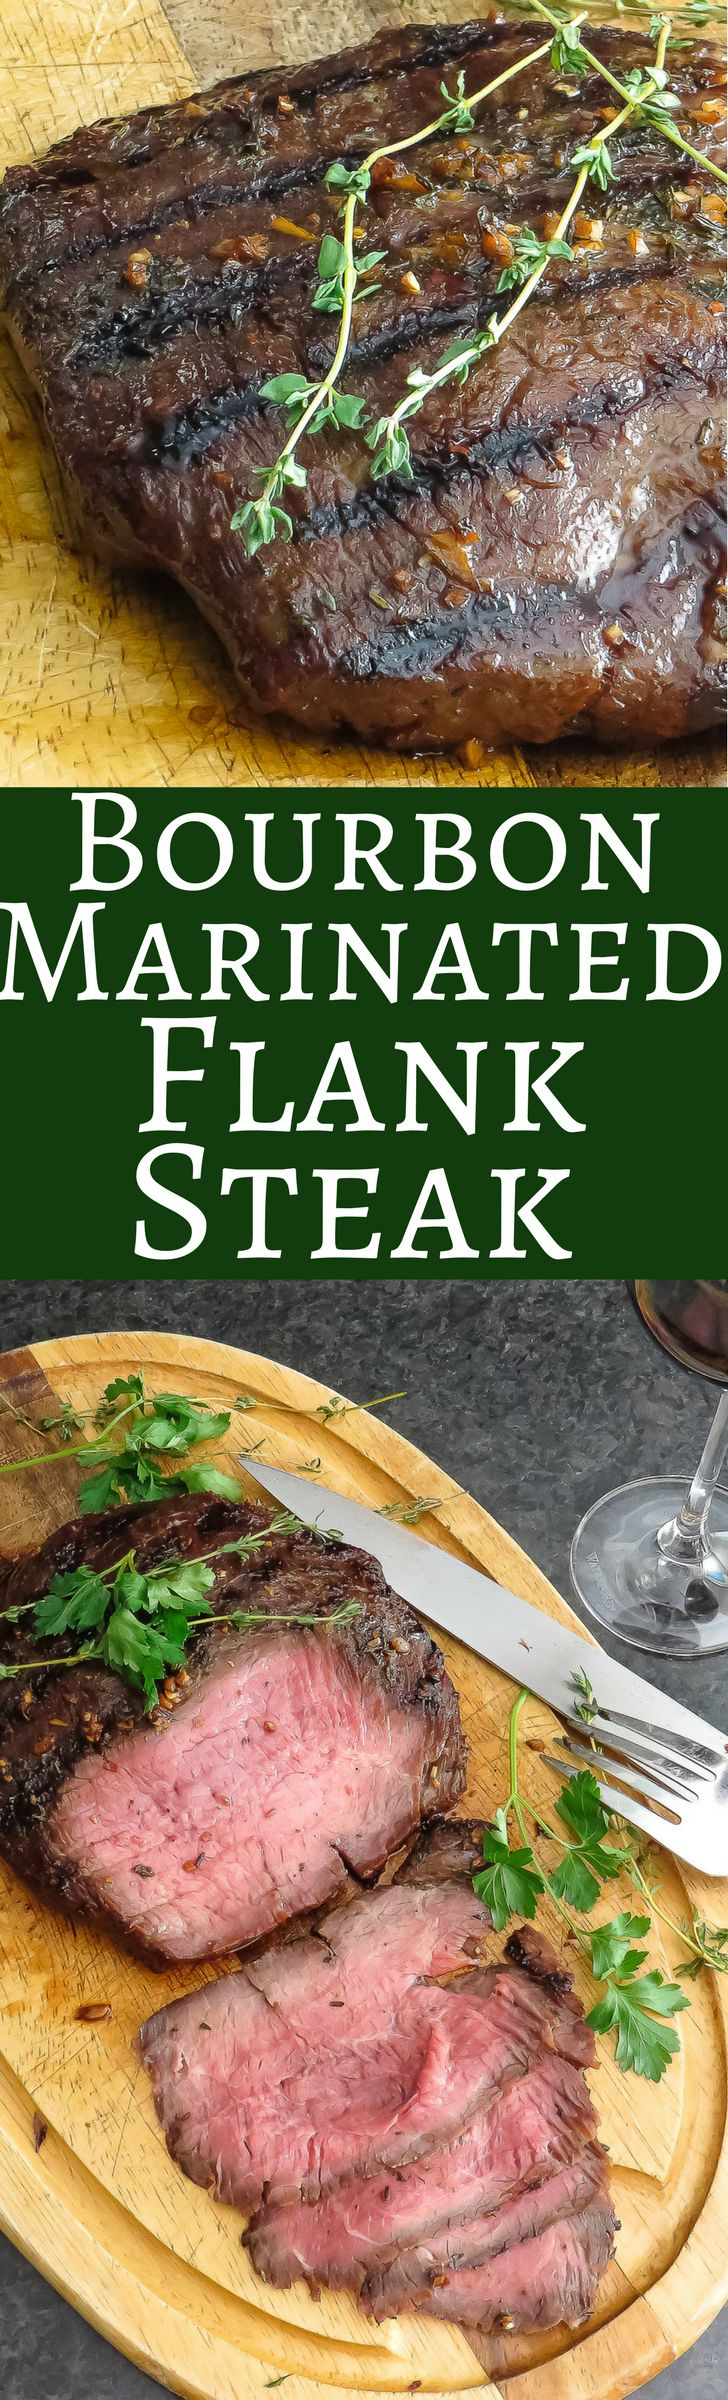 Bourbon Marinated Flank Steak